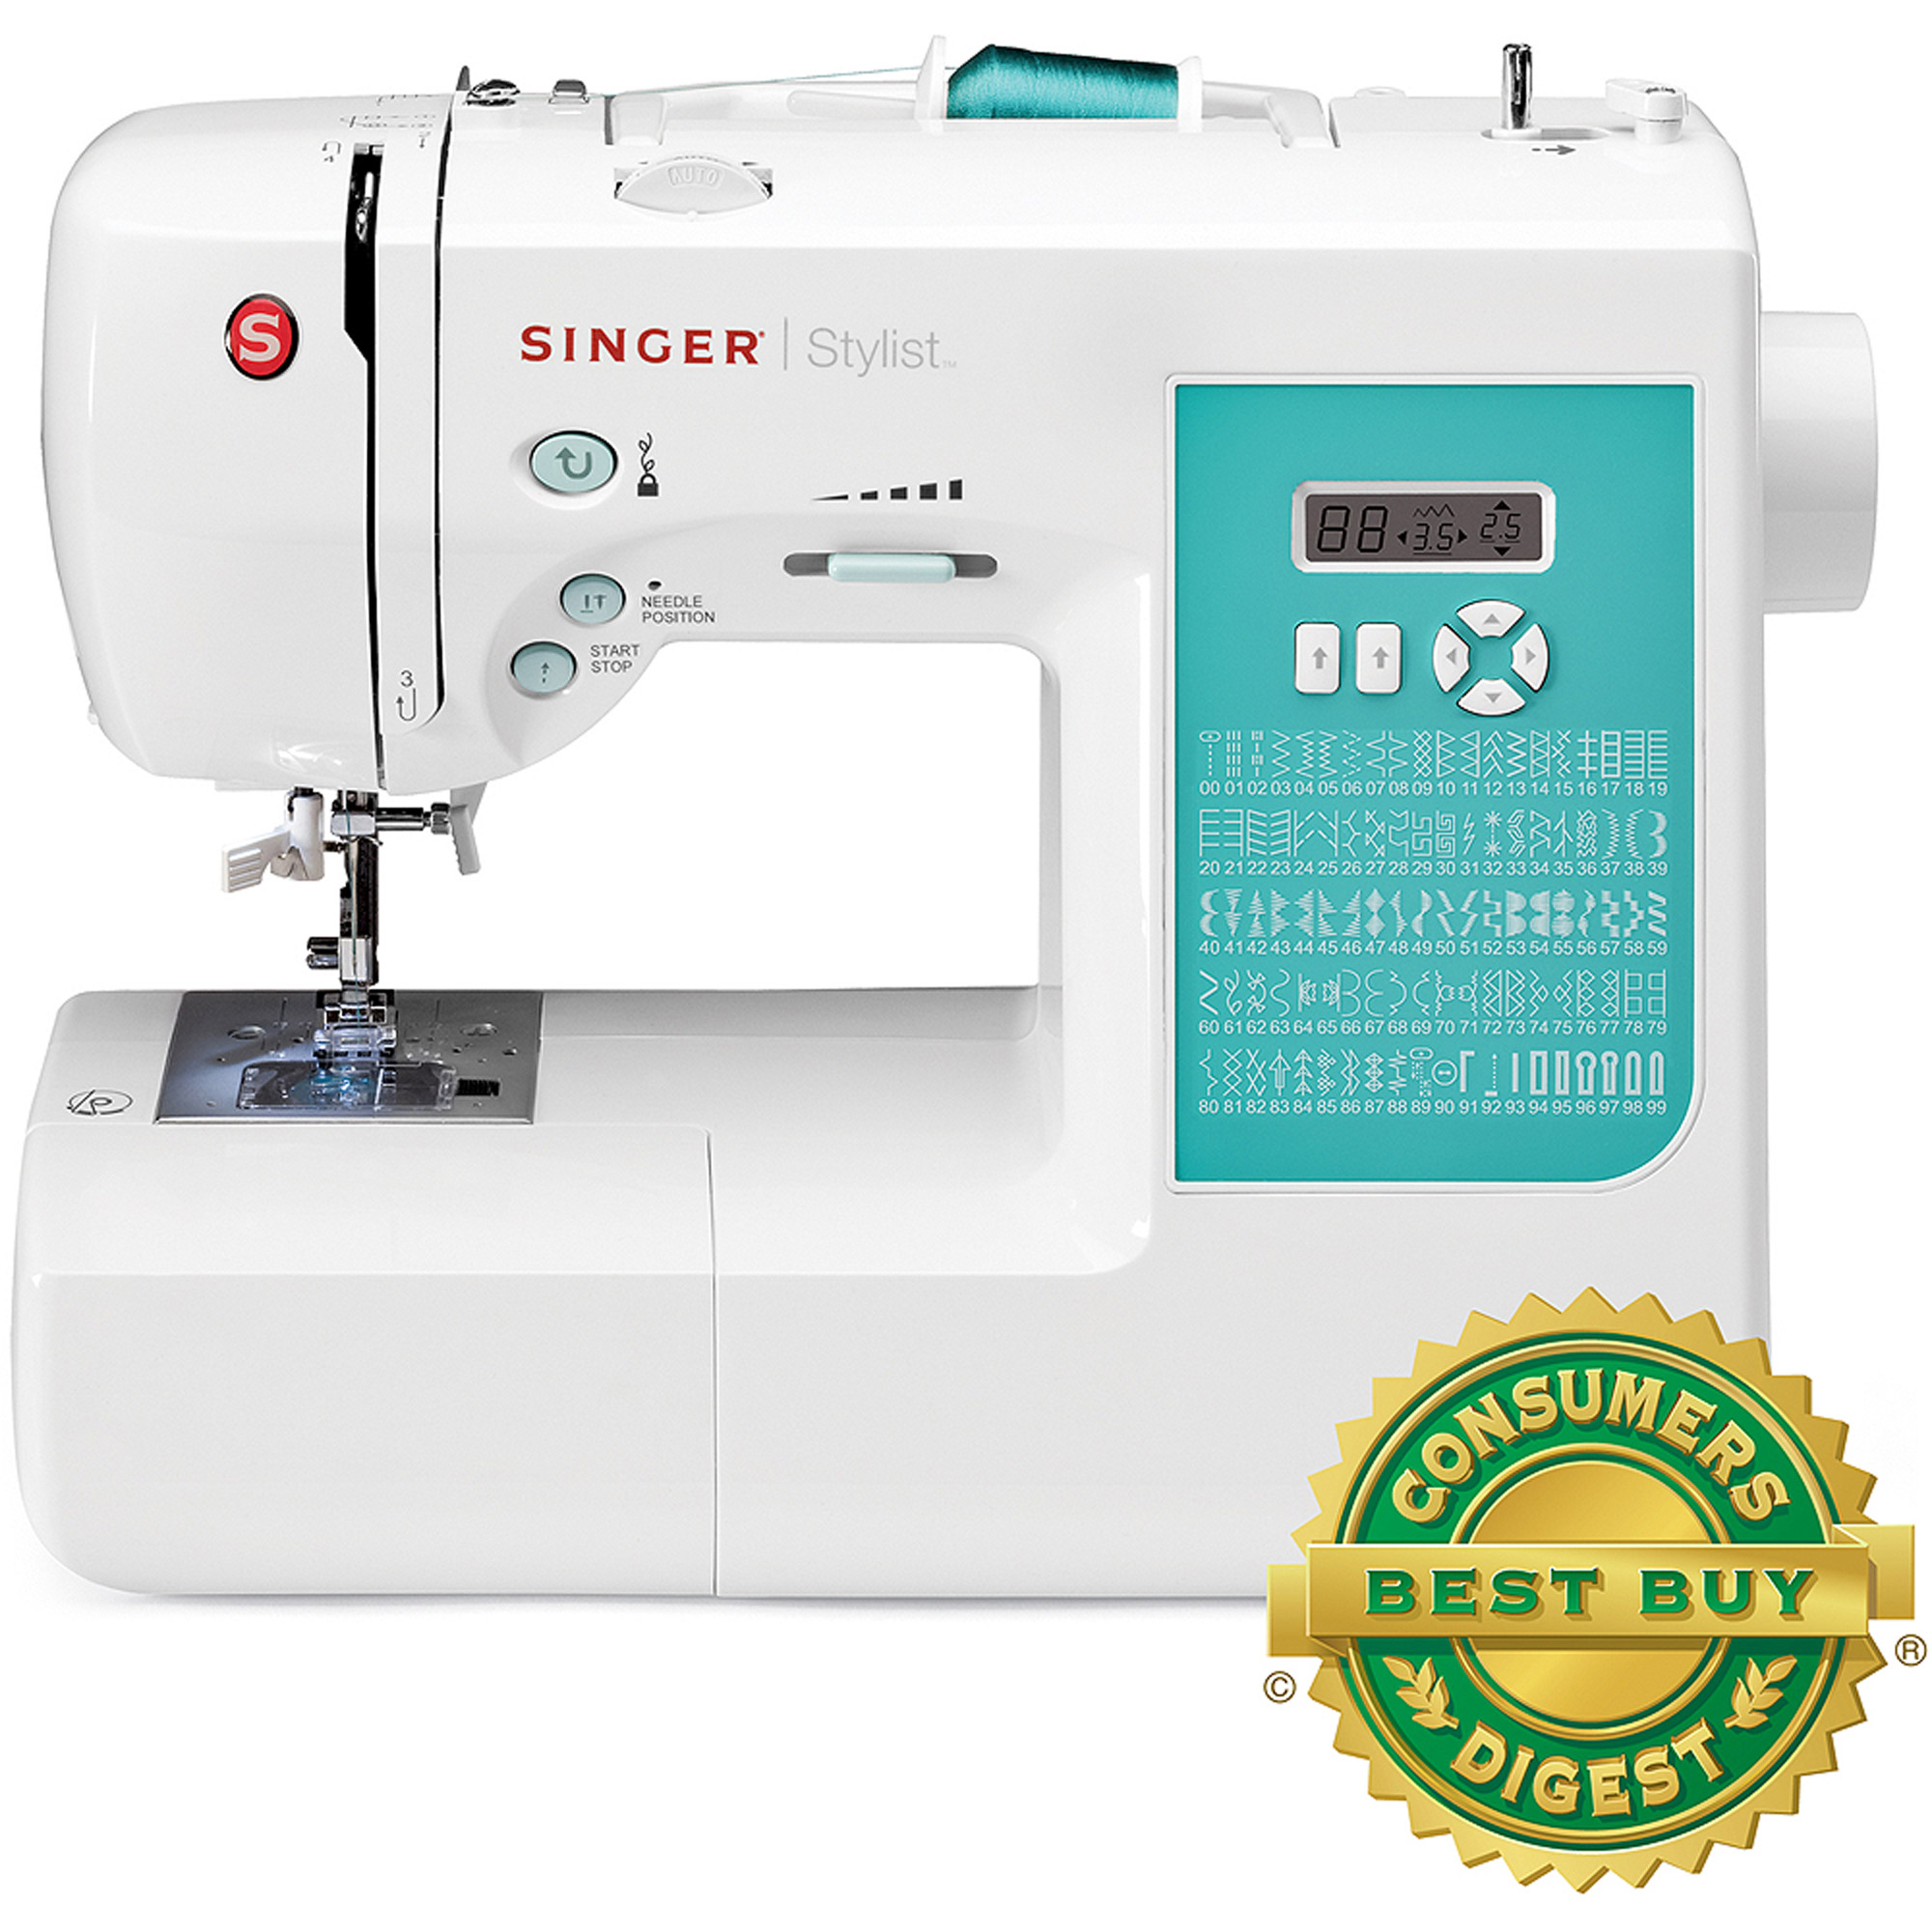 SINGER 7258 Stylist Award-Winning 100-Stitch Computerized Sewing Machine with DVD, 10 Presser Feet, Metal Frame, and More